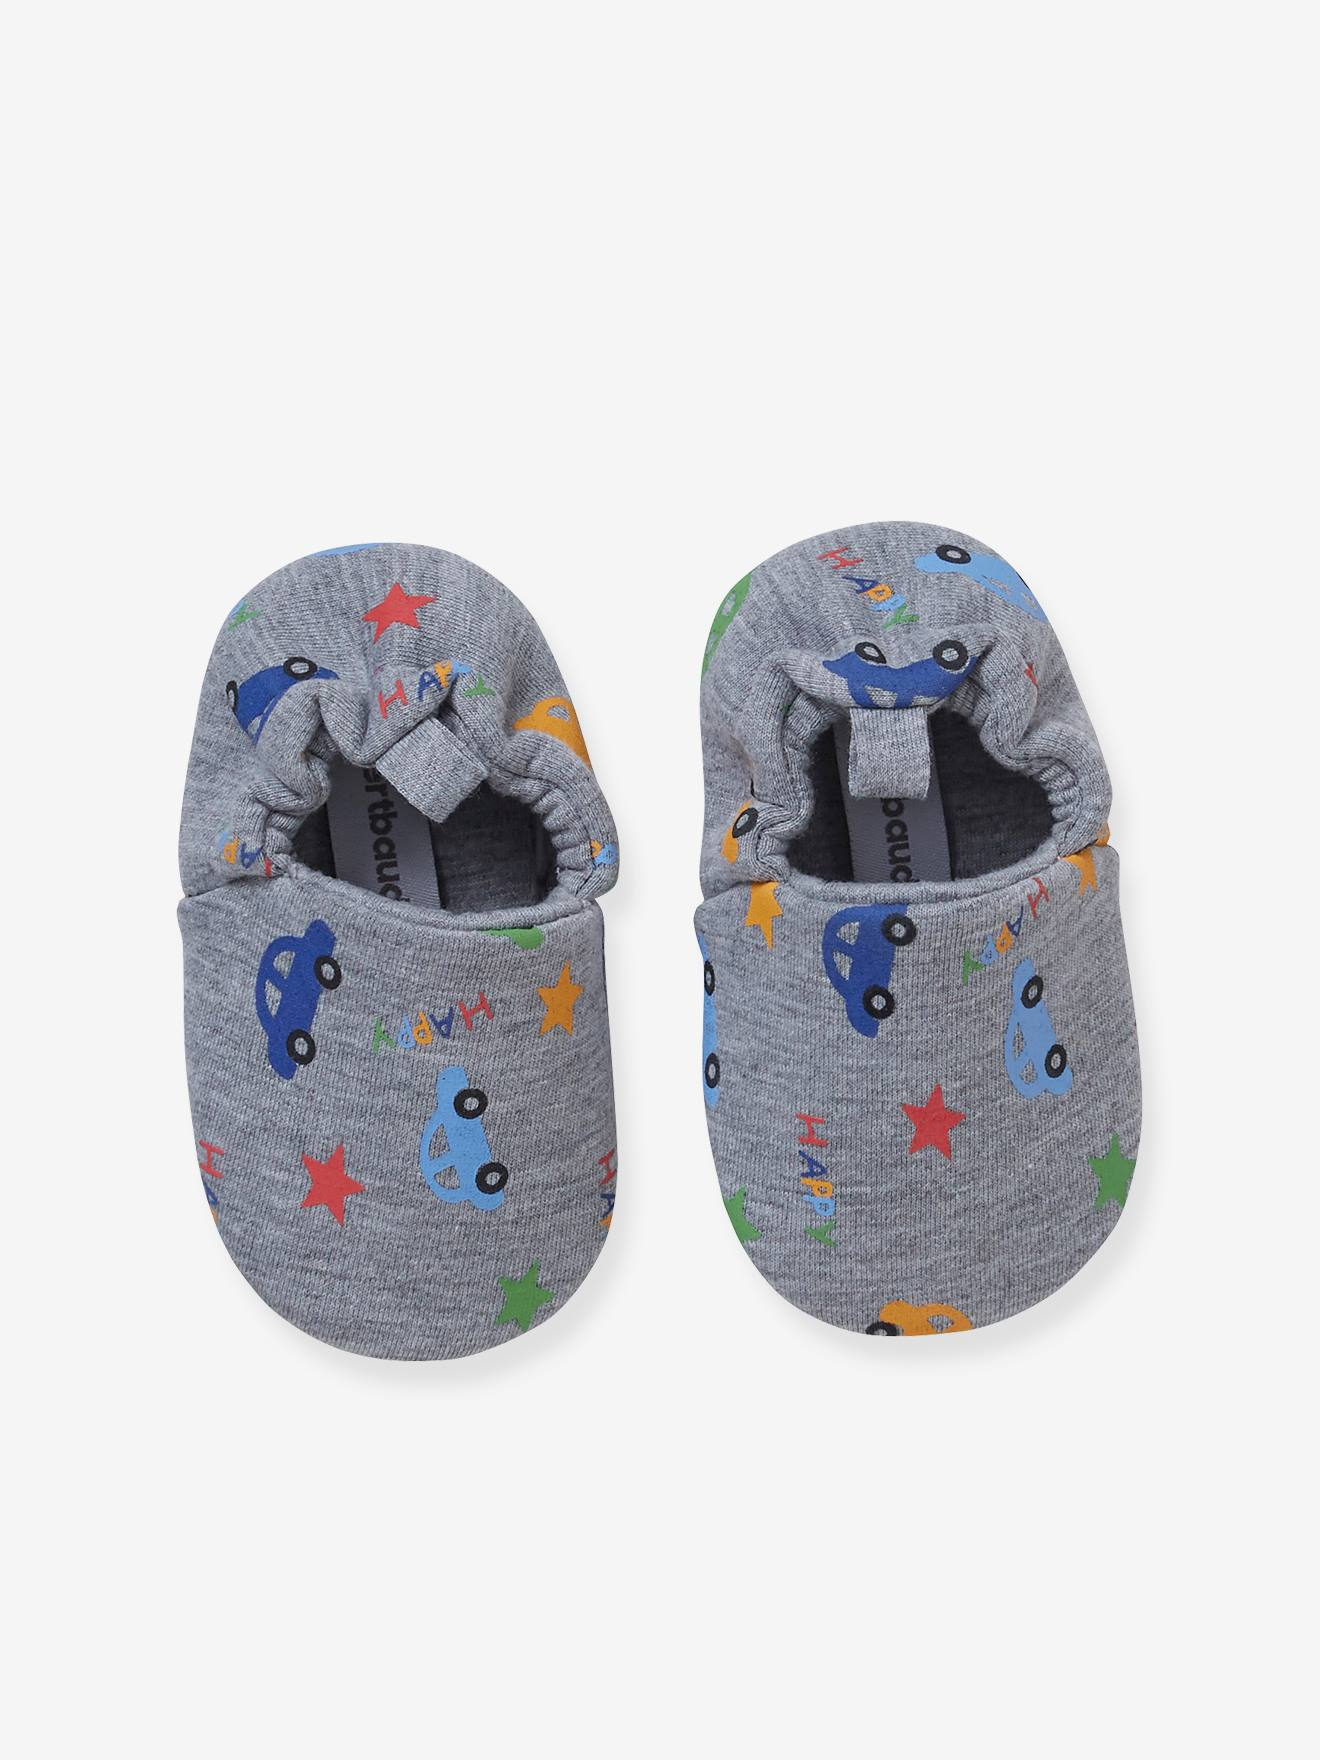 Elasticated Booties, for Baby Boys